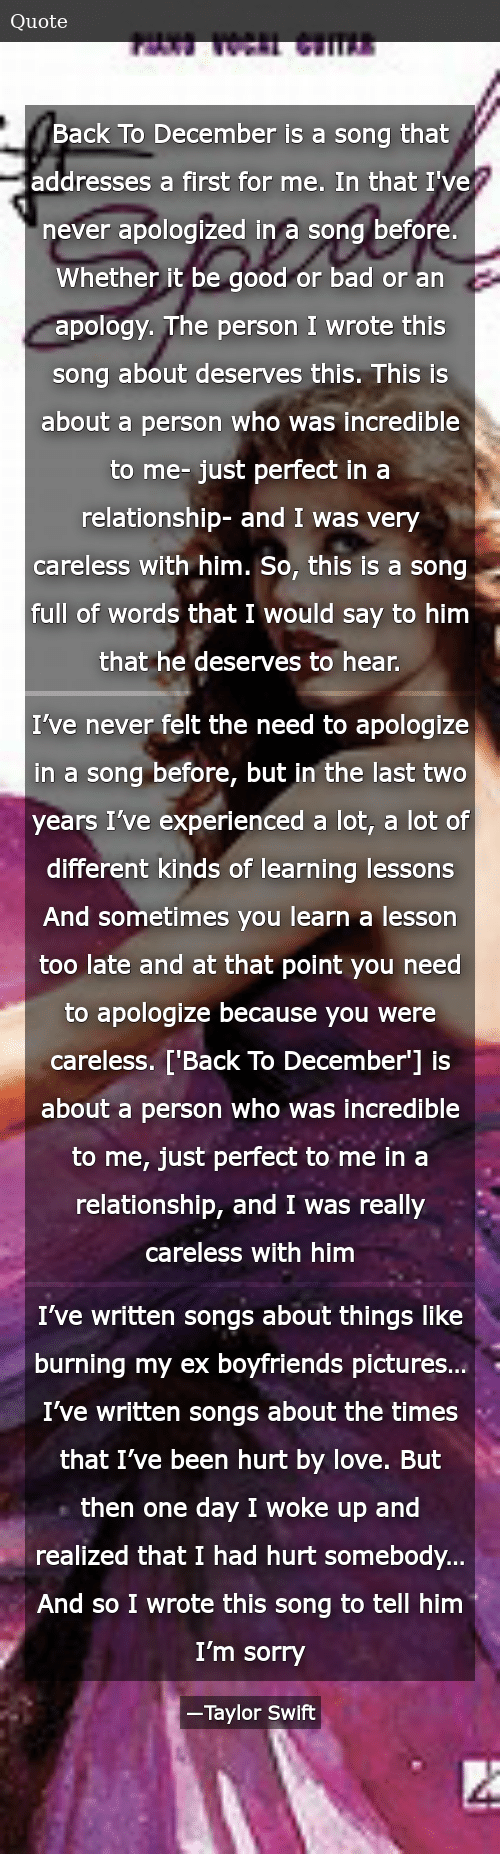 Back to December Is a Song That Addresses a First for Me in